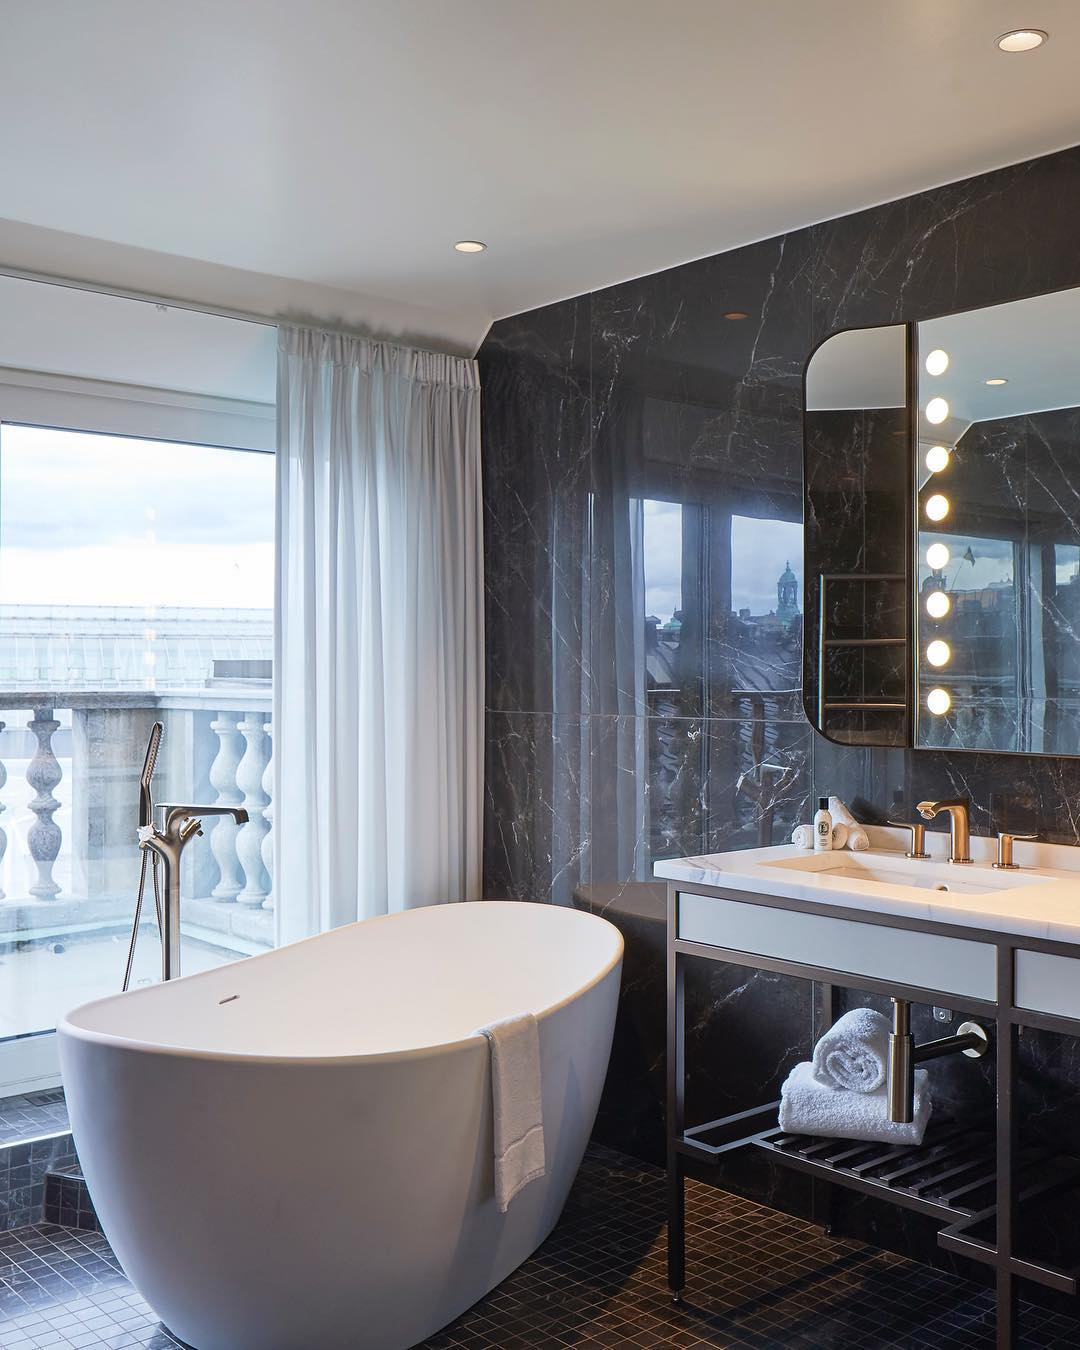 The bathroom view in the Terrace Bank Suit. #bankhotelsto...